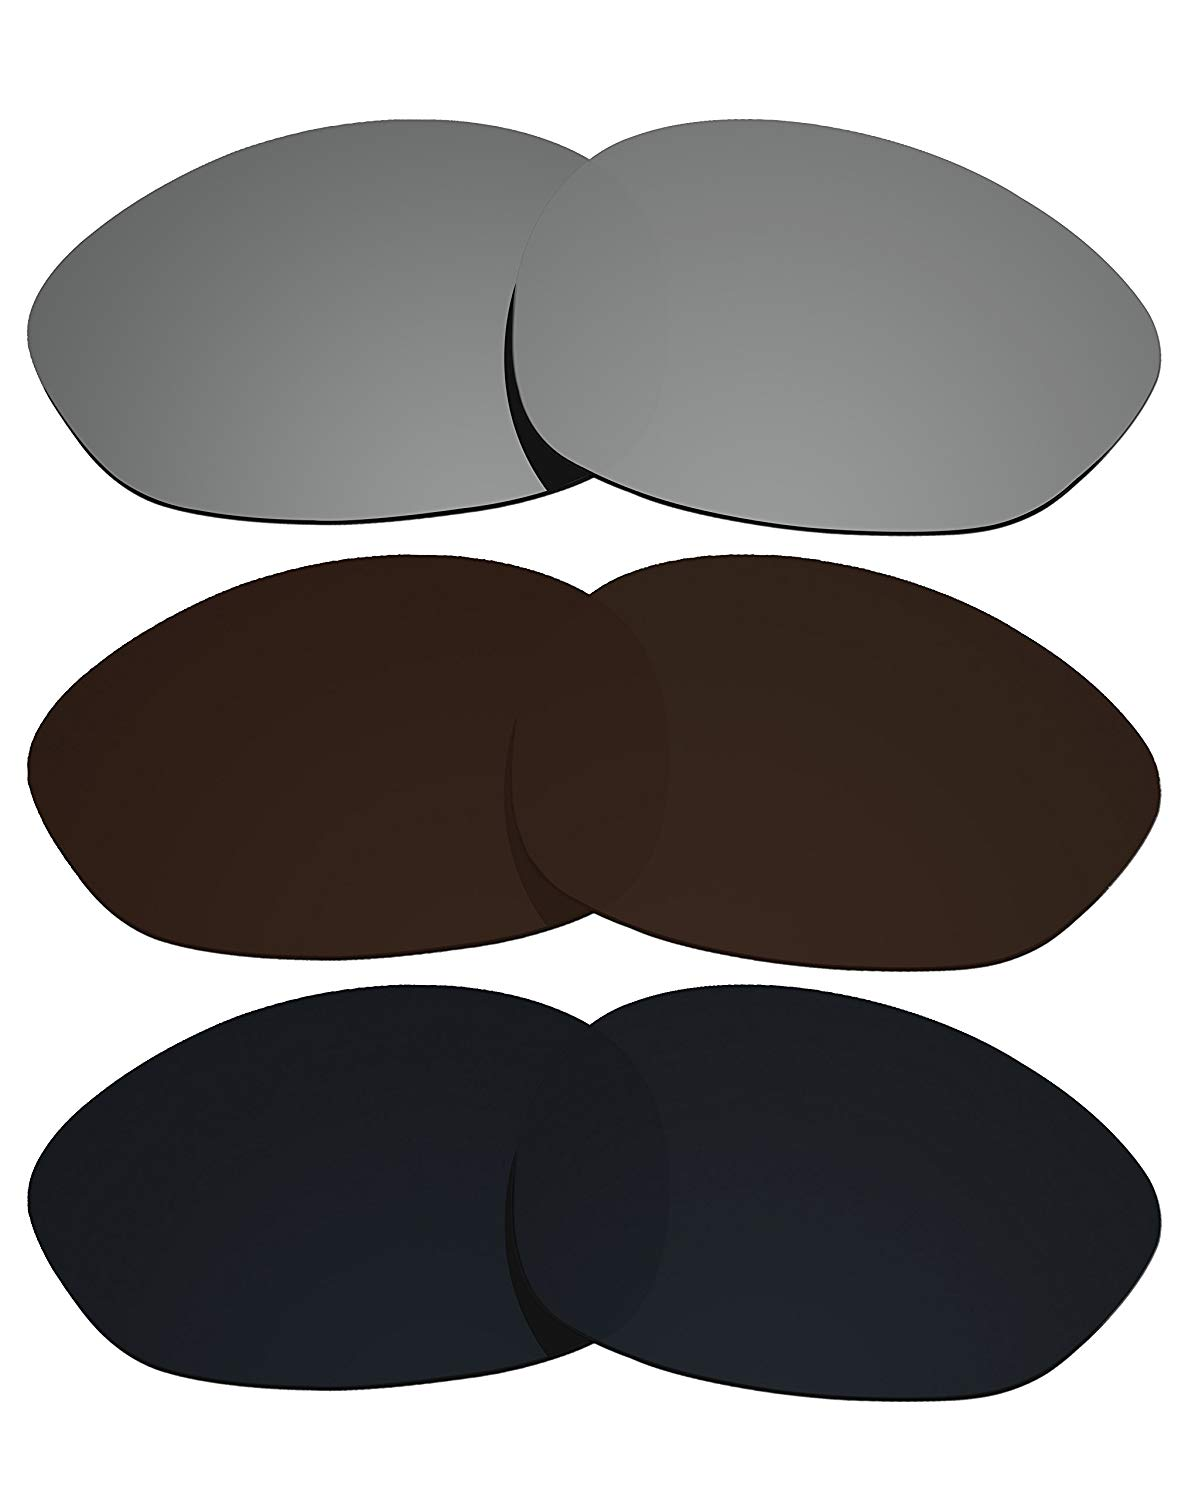 885195e83cf Get Quotations · 3 Pairs COLOR STAY LENSES 2.0mm Thickness Polarized  Replacement Lenses Brown   Black   Silver